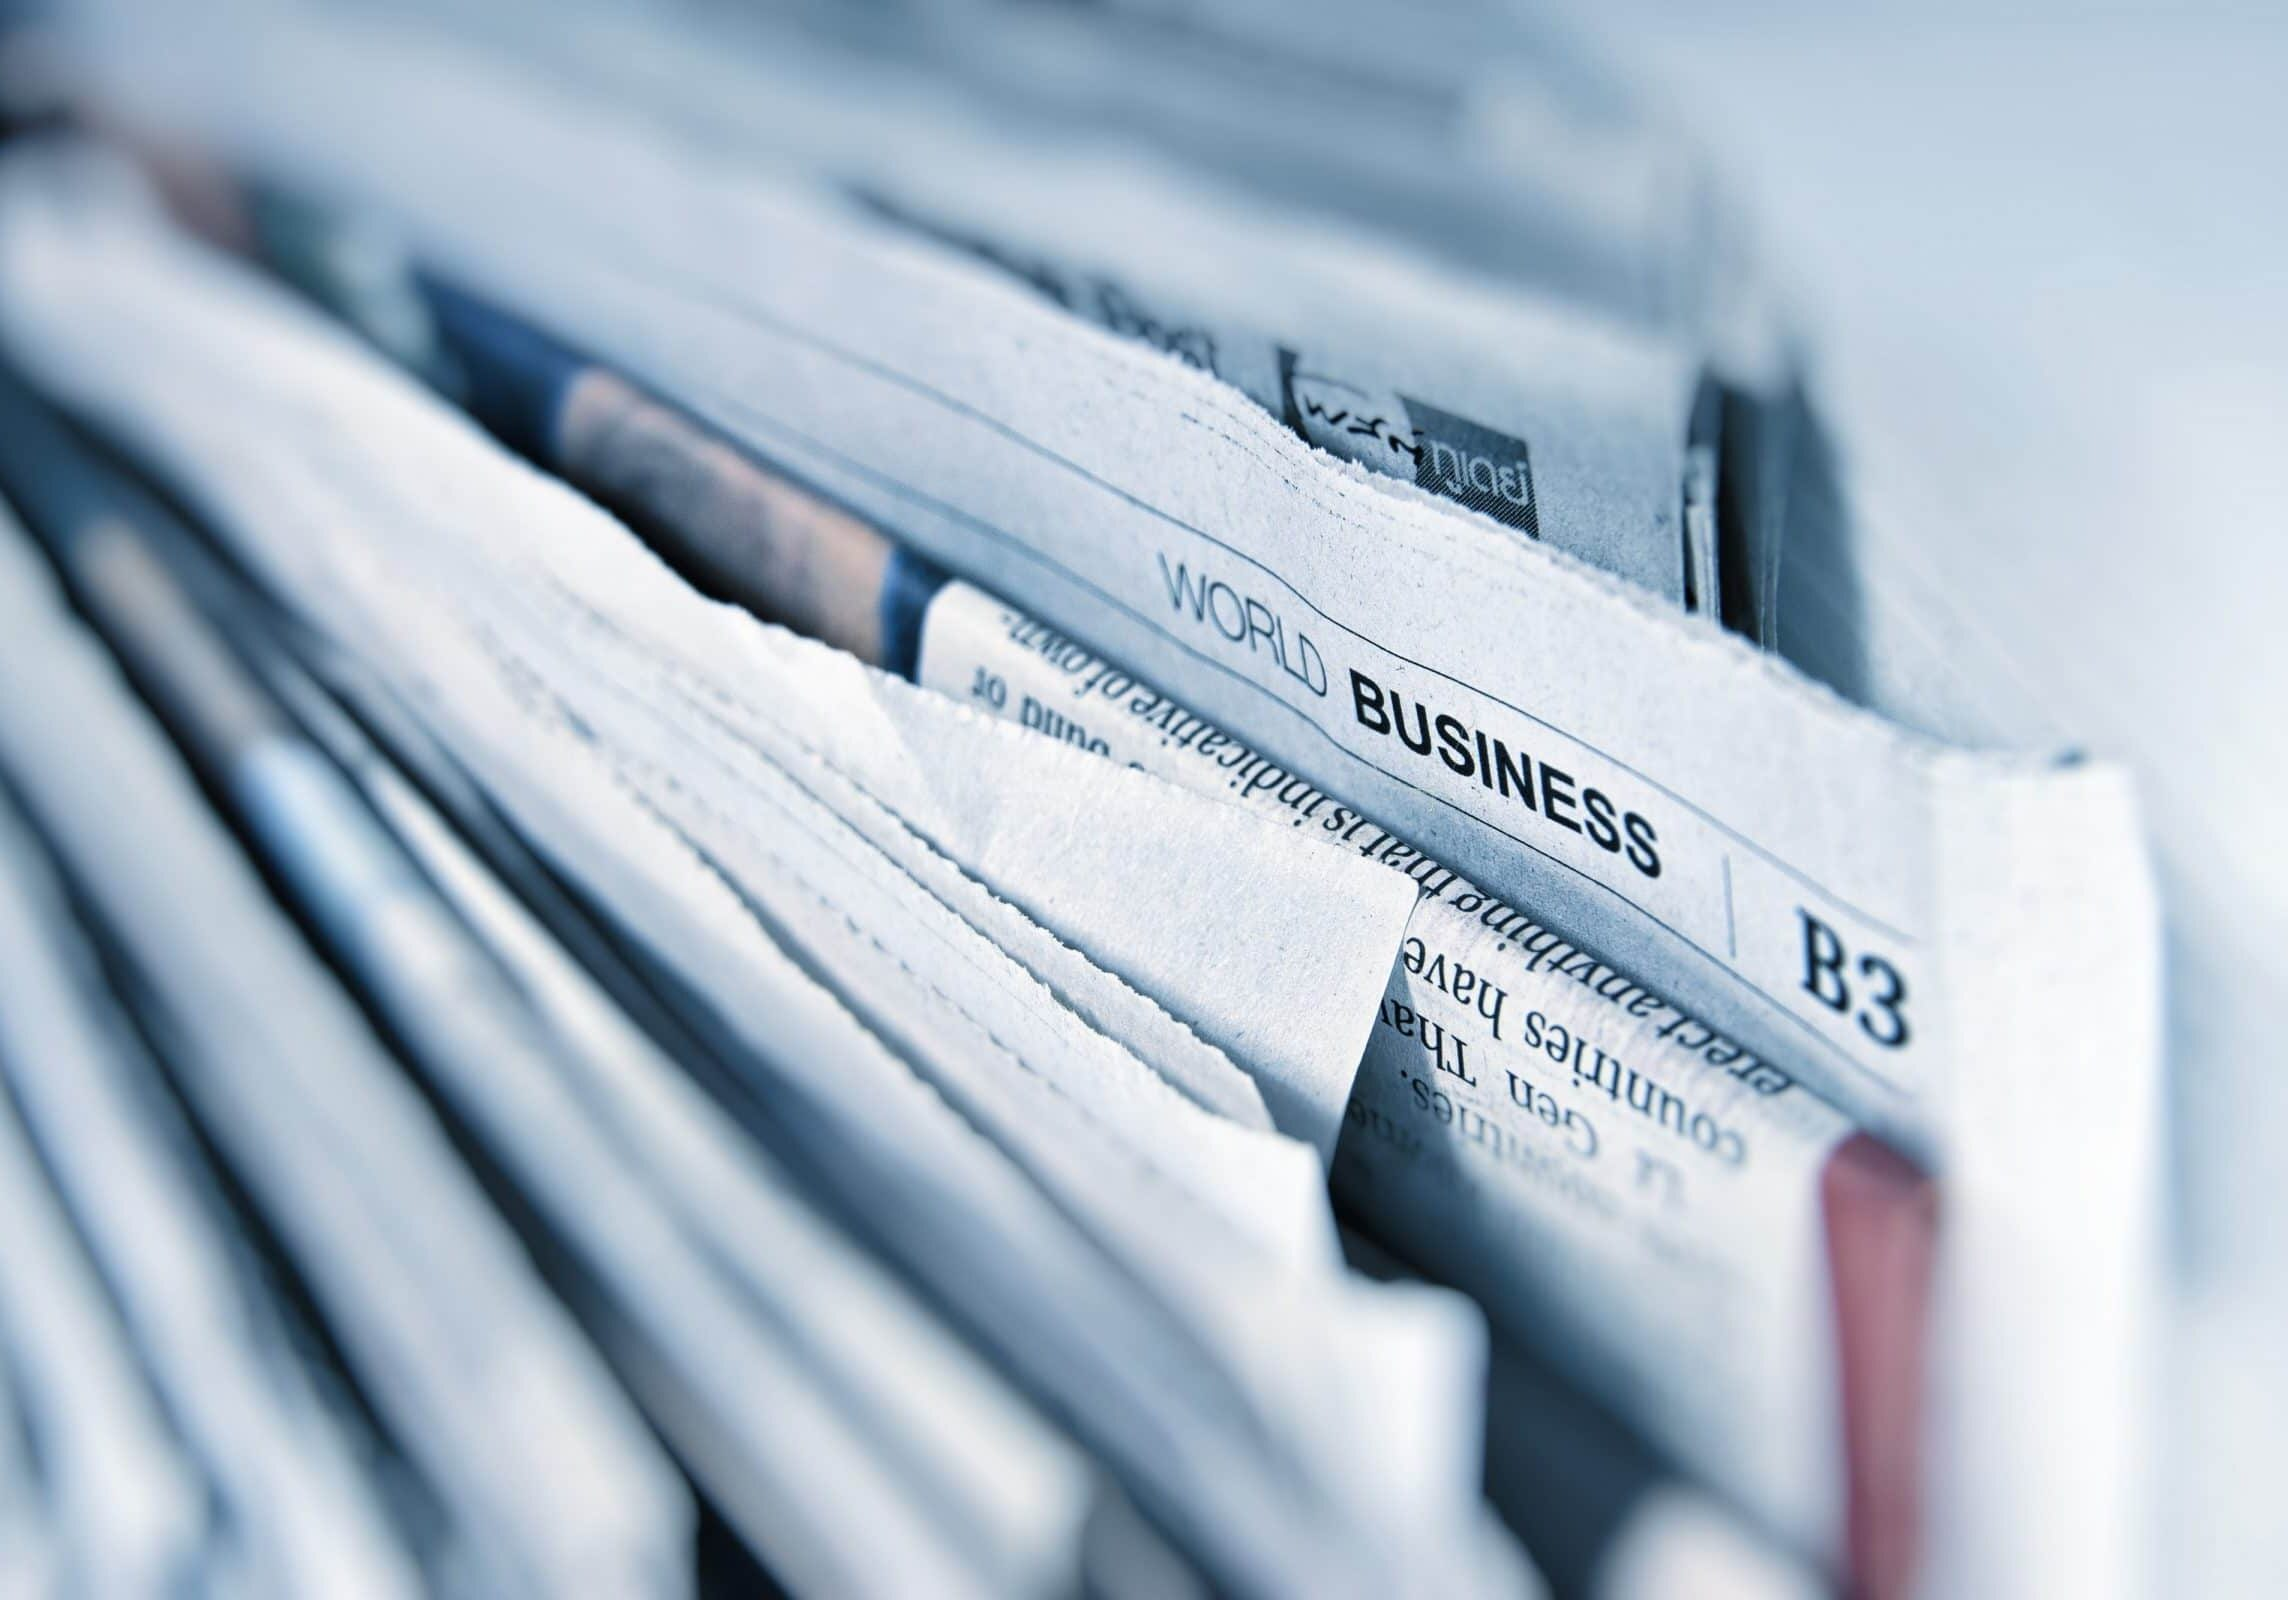 Close up of newspapers